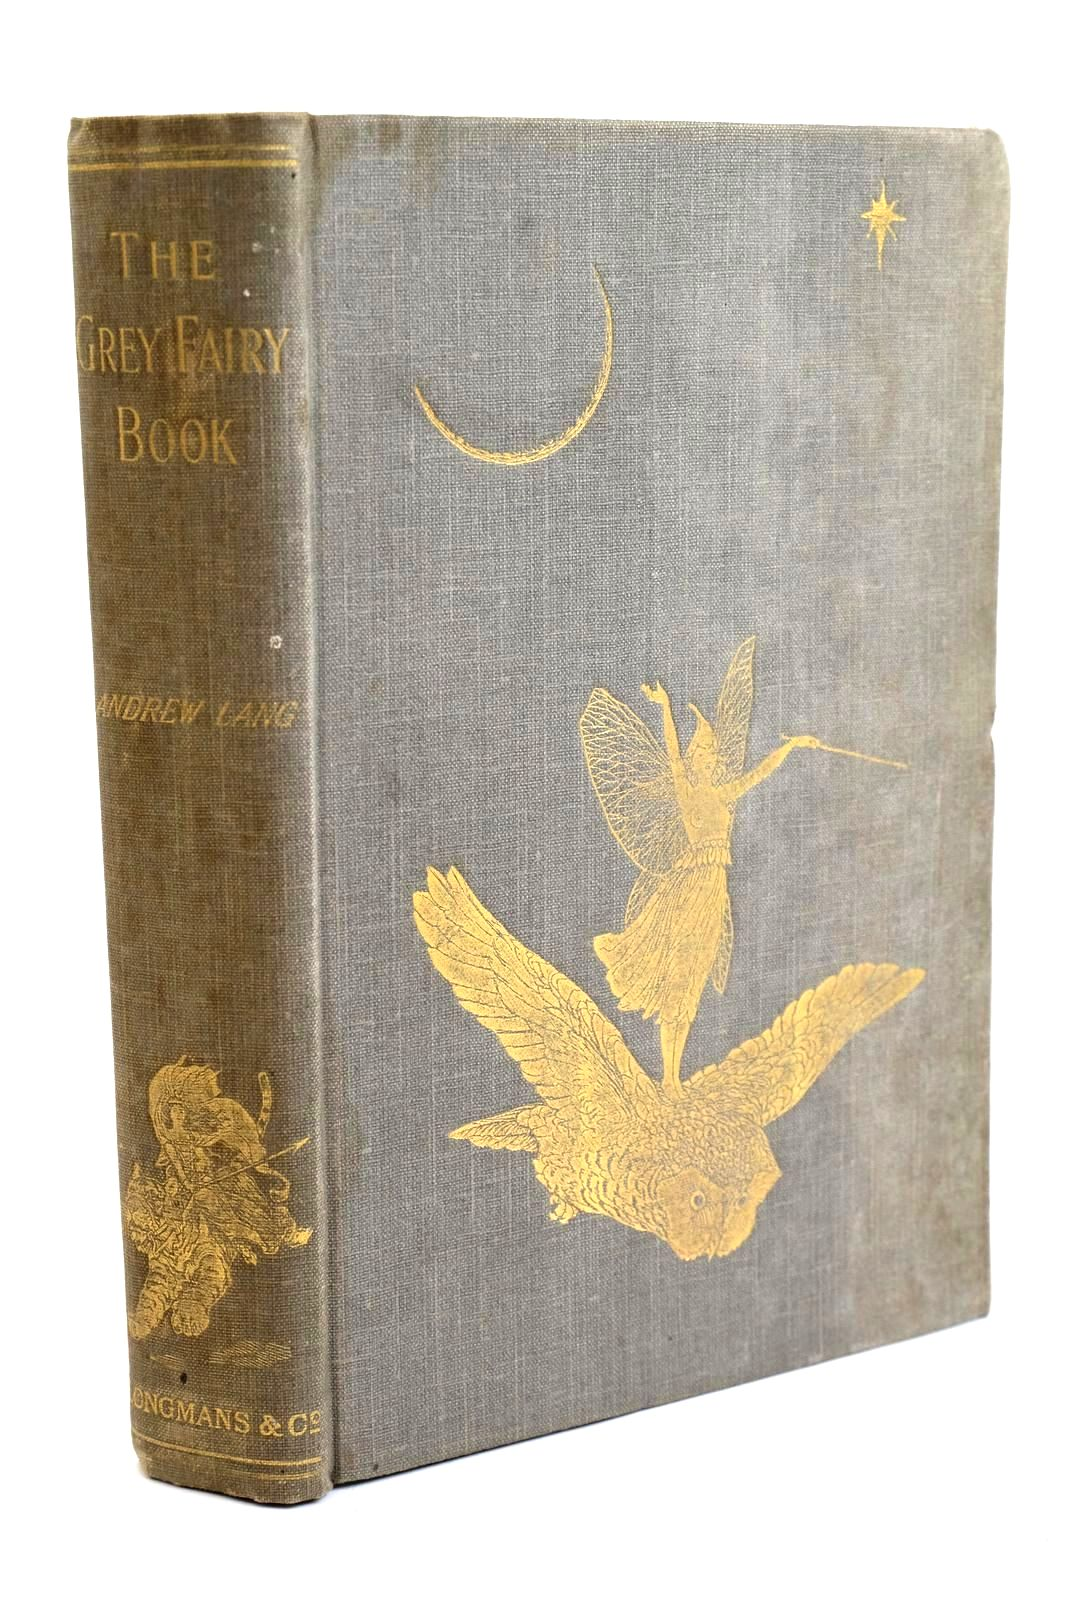 Photo of THE GREY FAIRY BOOK- Stock Number: 1321635